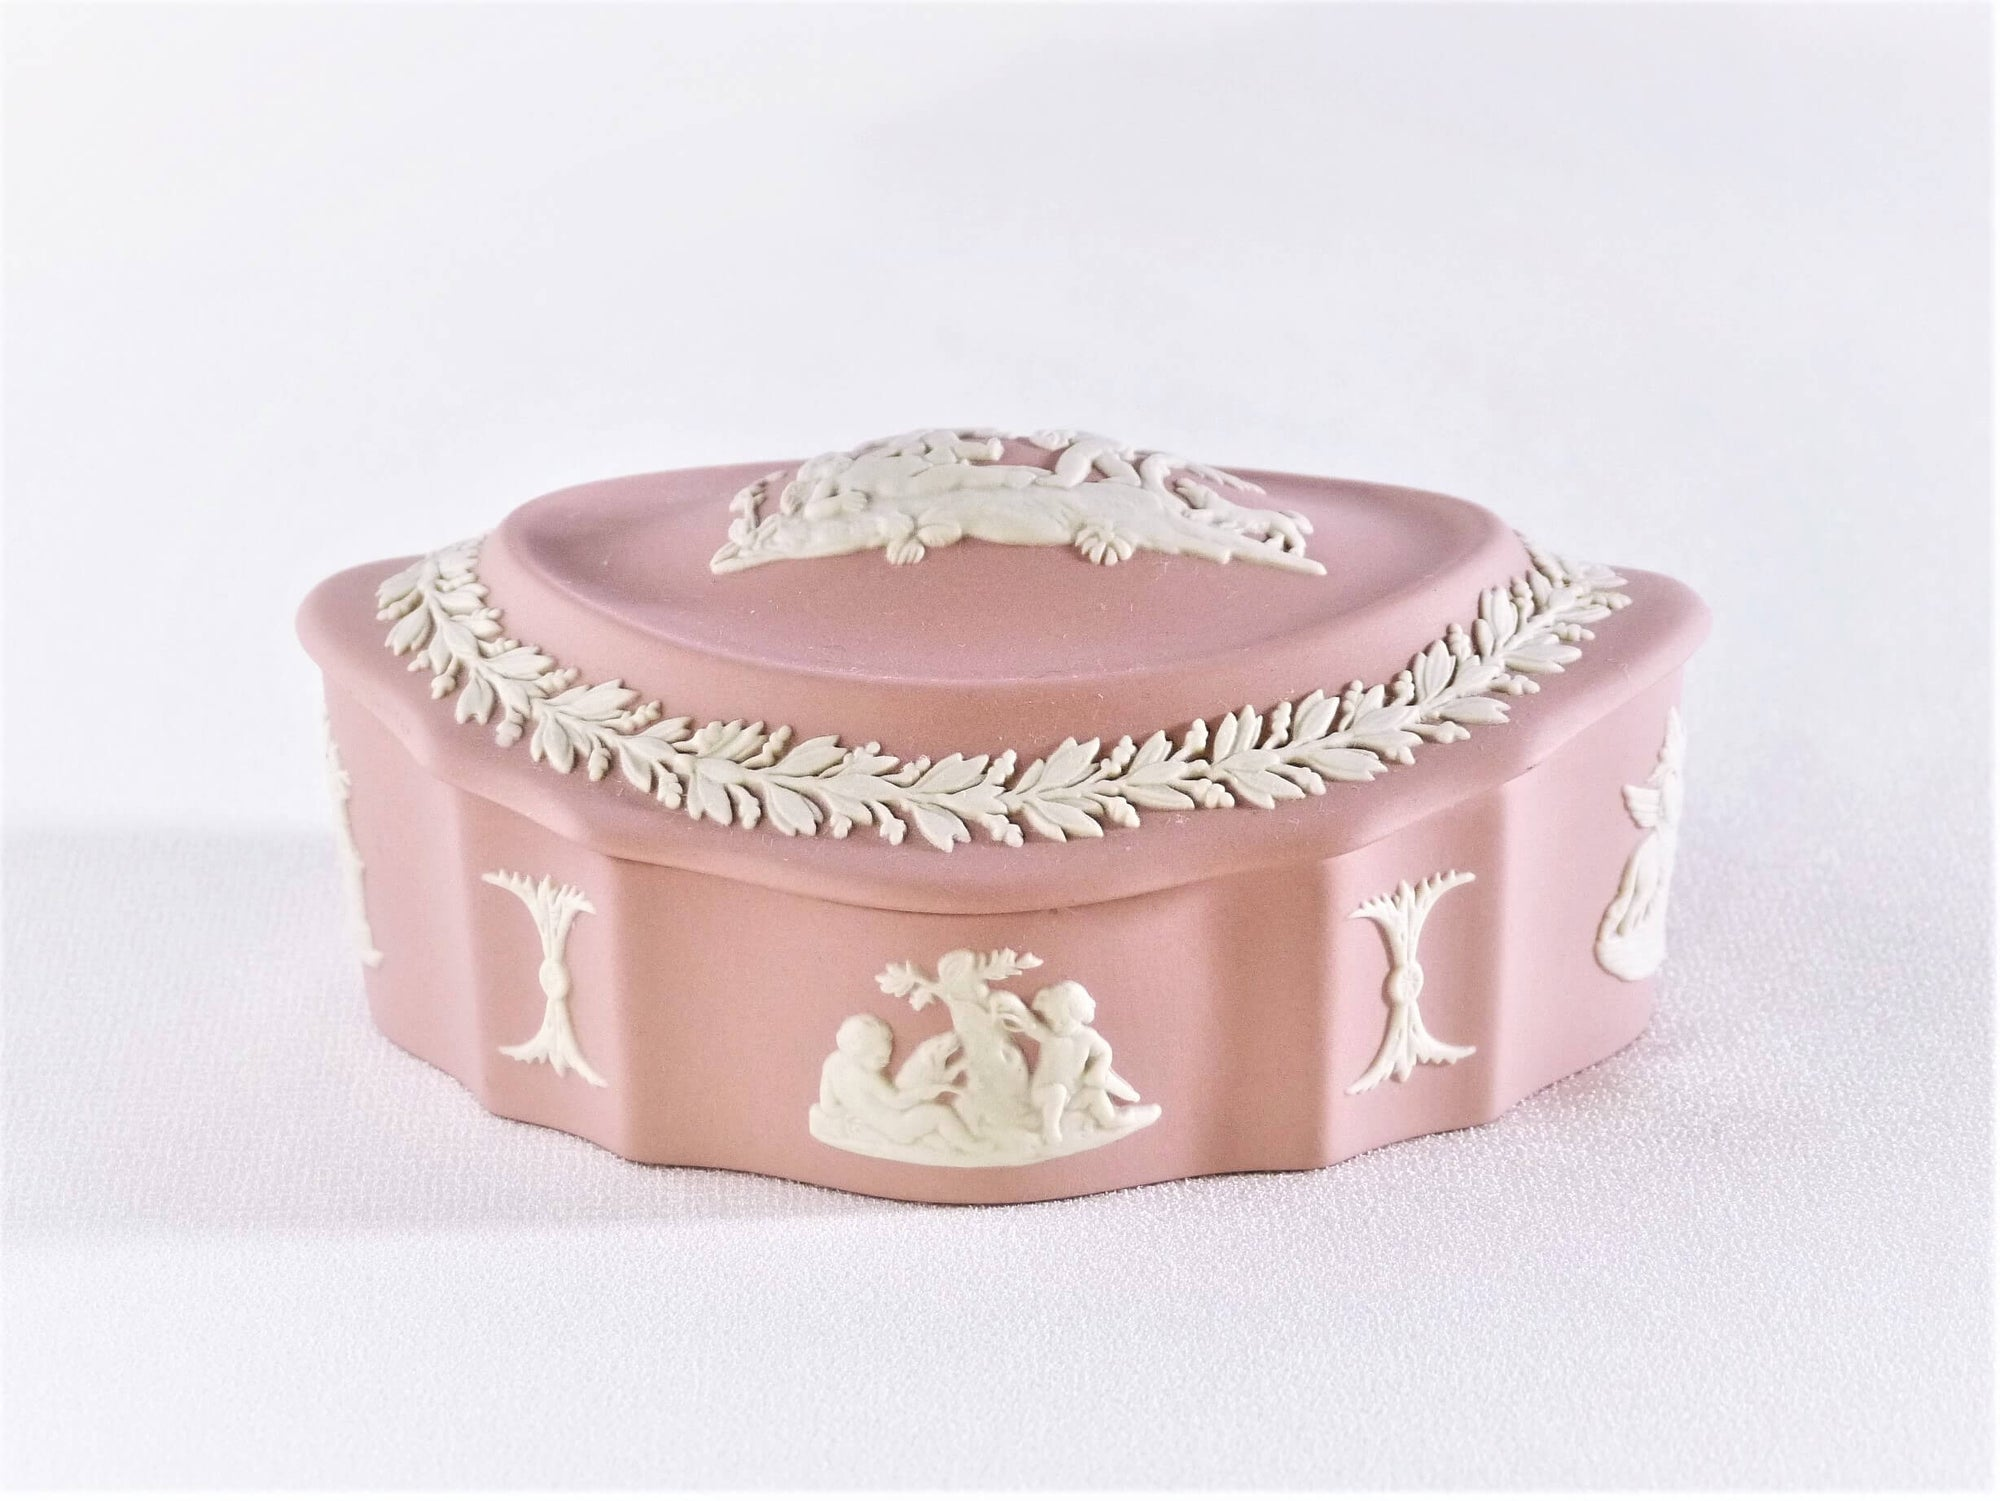 Pink Jasperware Wedgwood Box, Oval Shaped Trinket Box